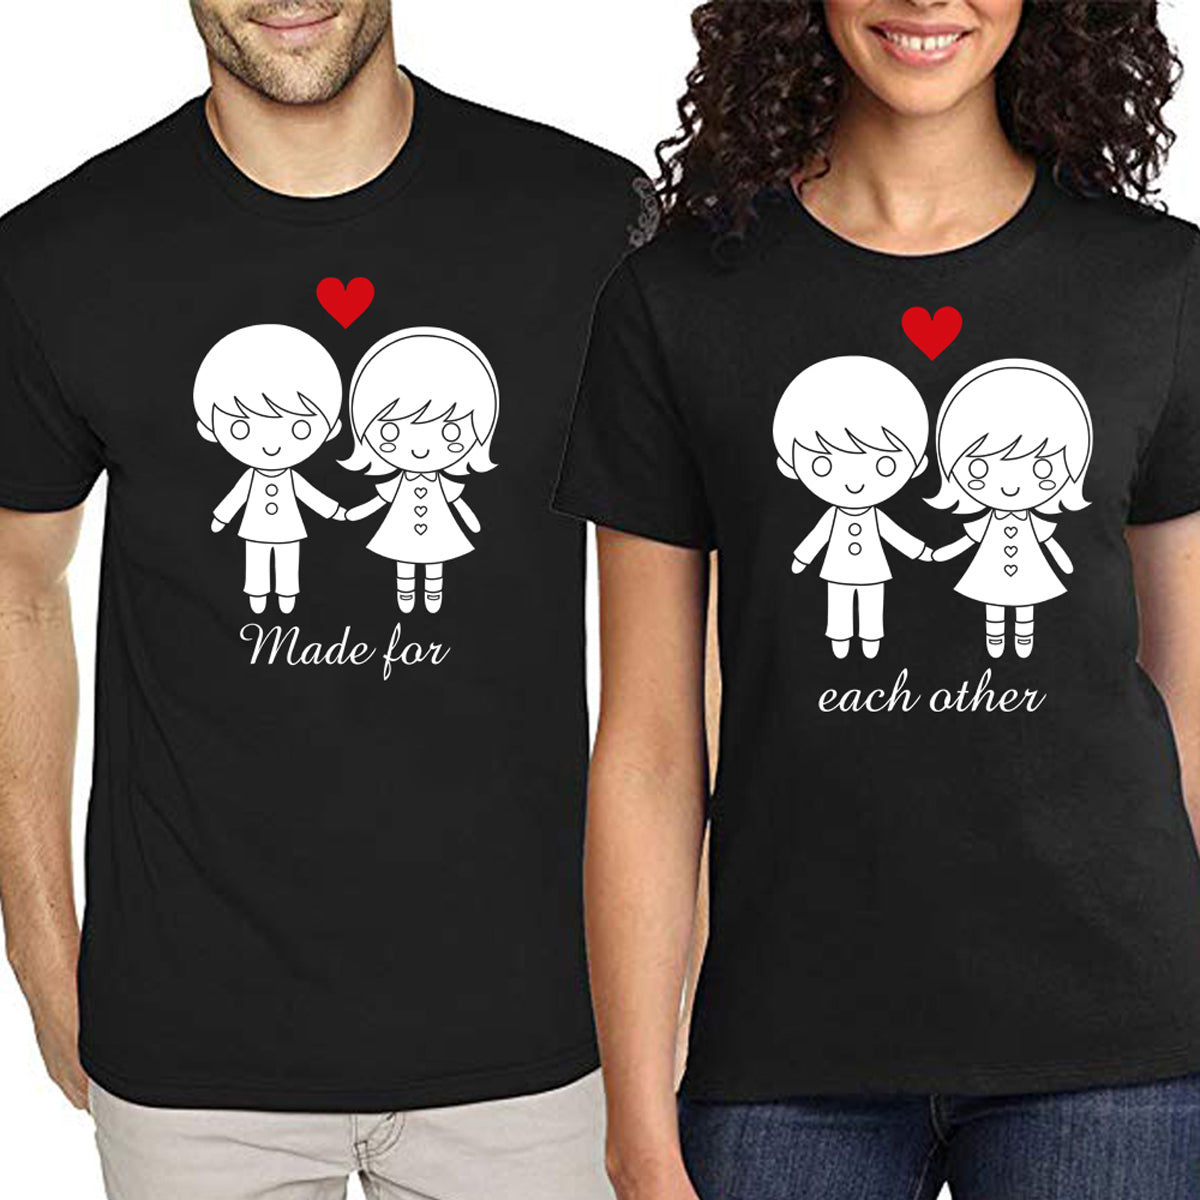 Sprinklecart Matching Made for Each Other Couple T Shirt | Combo of 2 CottonT Shirts